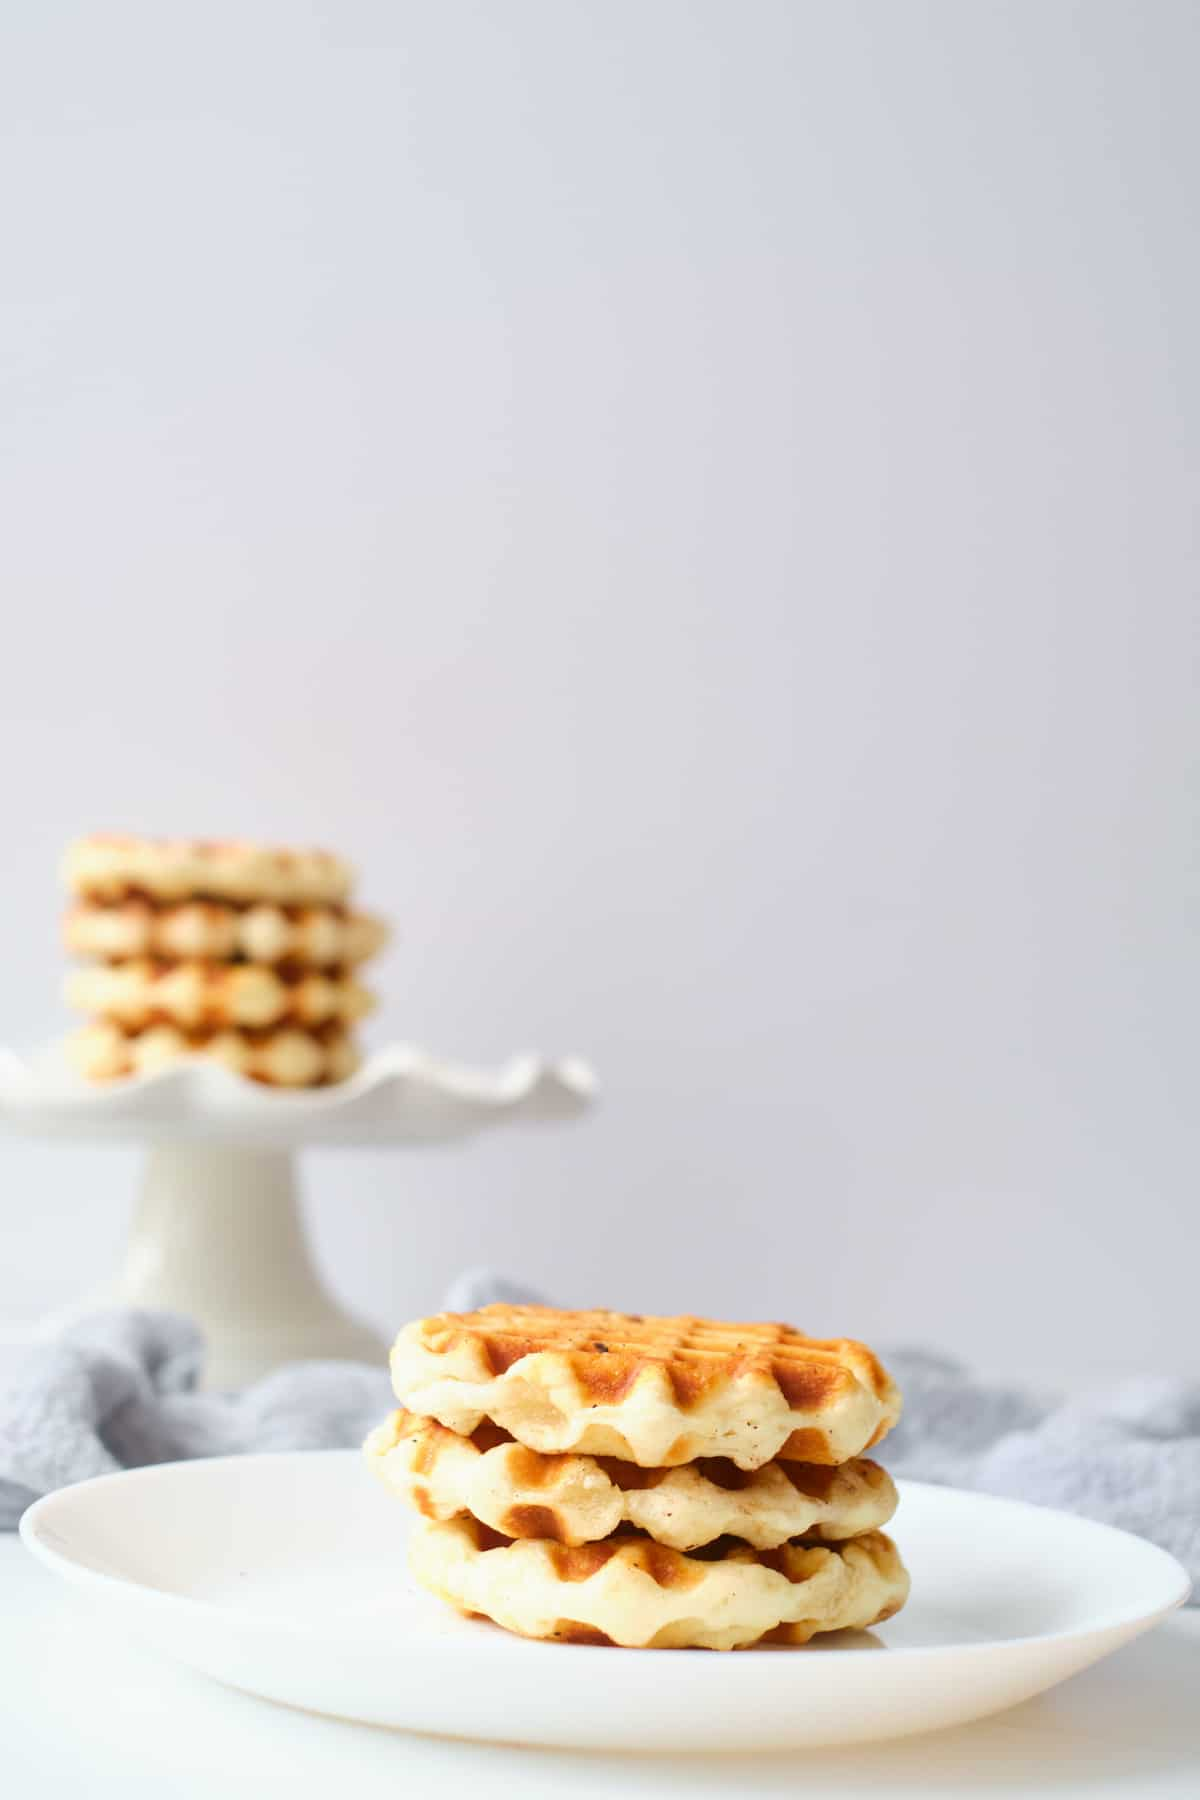 3 of the finished biscuit waffles on a white plate with another stack behind them